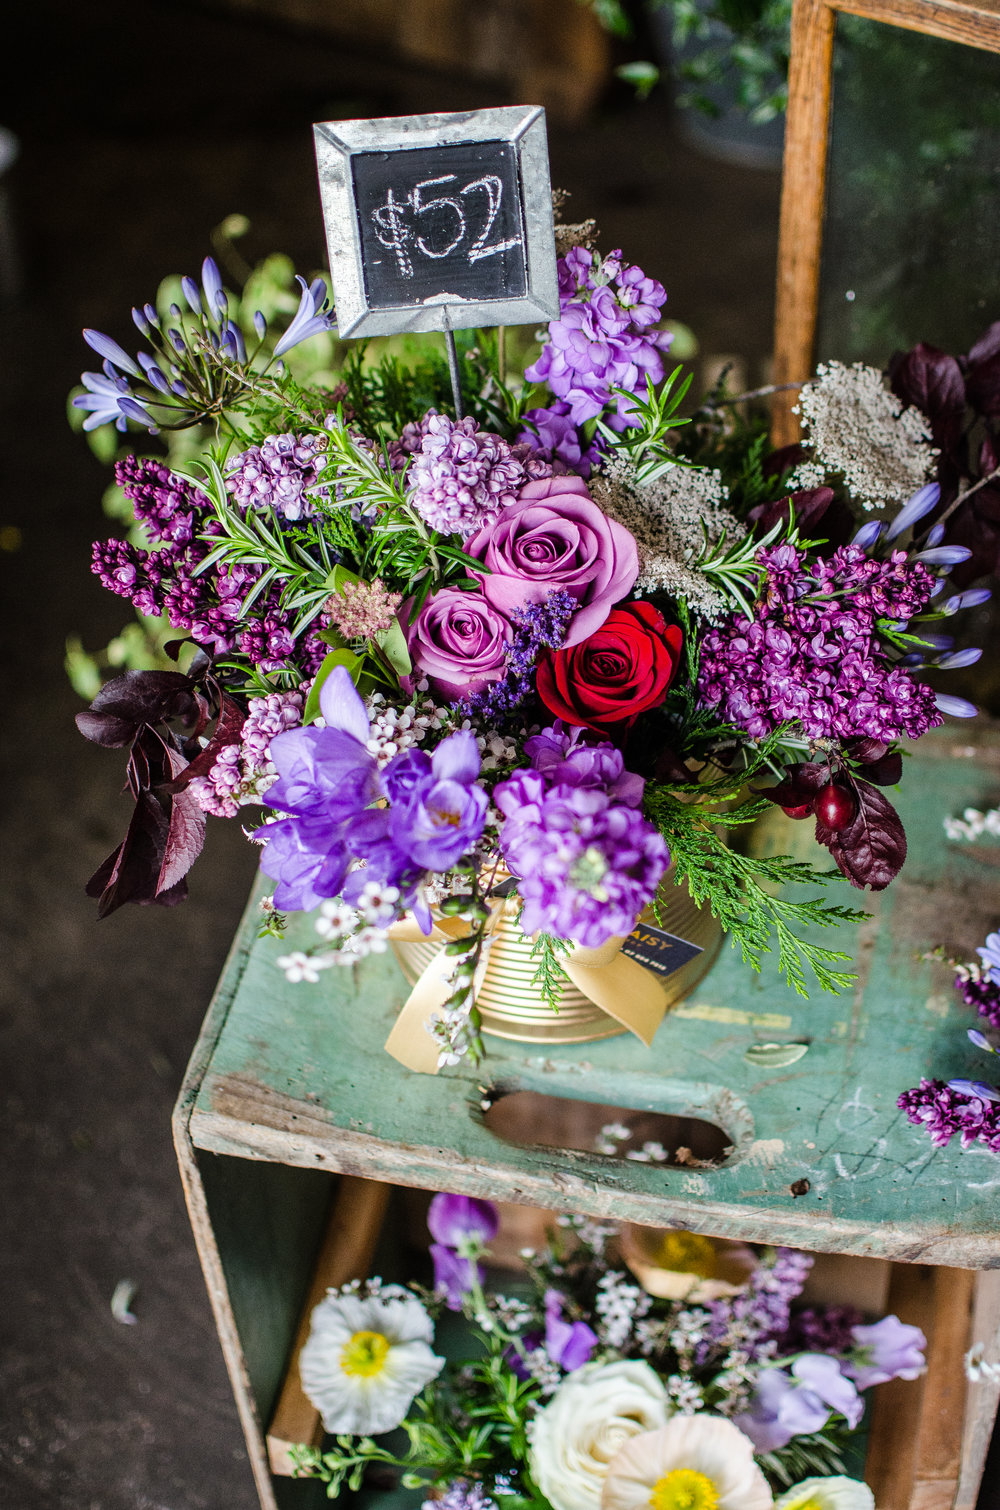 Miss Daisy Flower Shop - Audrey Fitzjohn Blog